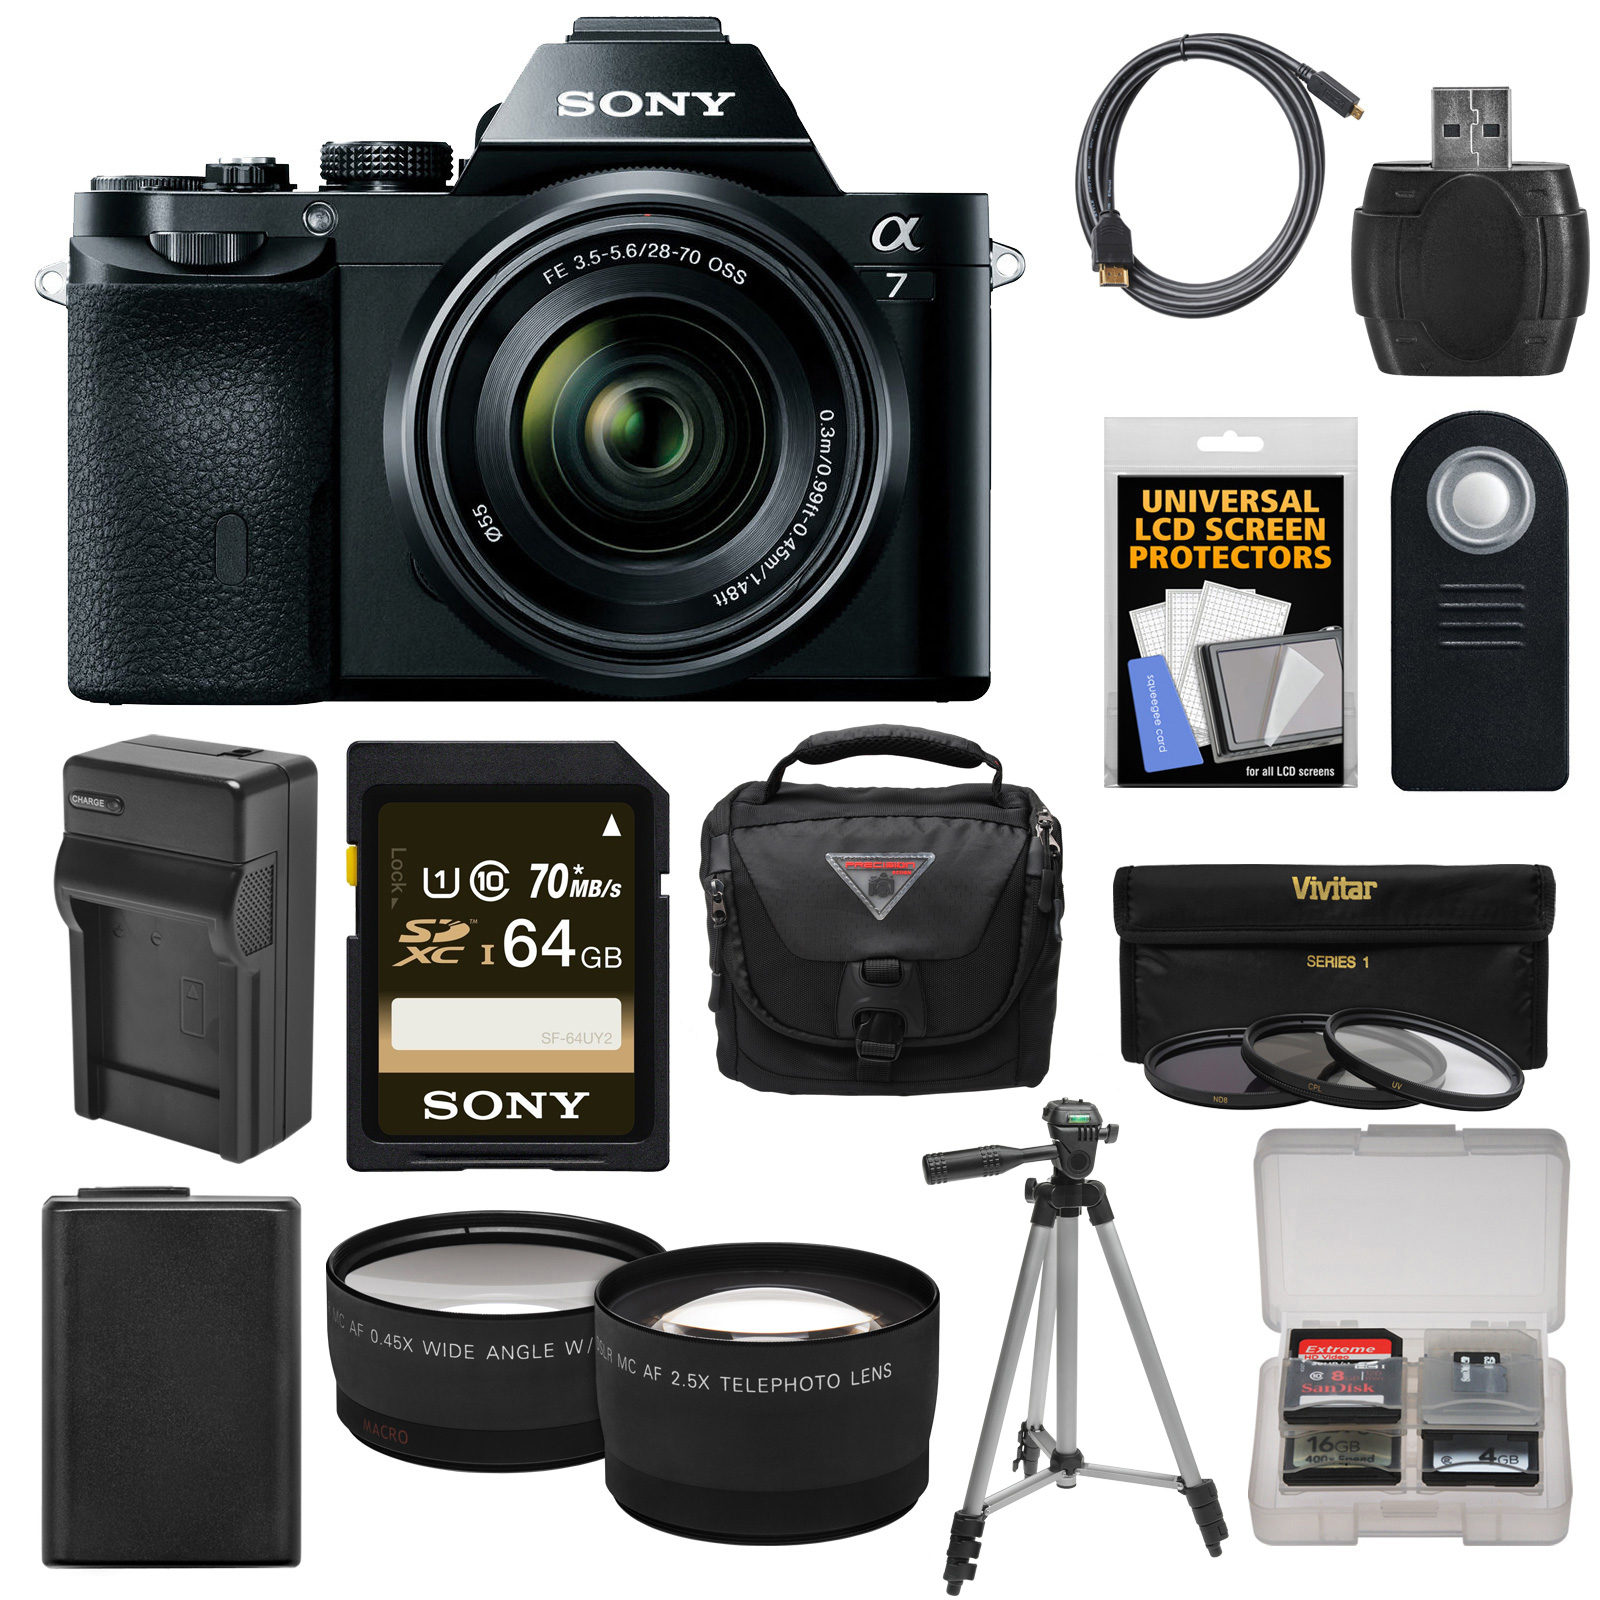 Sony Alpha A7 Digital Camera & 28-70mm FE OSS Lens with 64GB Card + Battery & Charger + Case + Tripod + Tele... by Sony